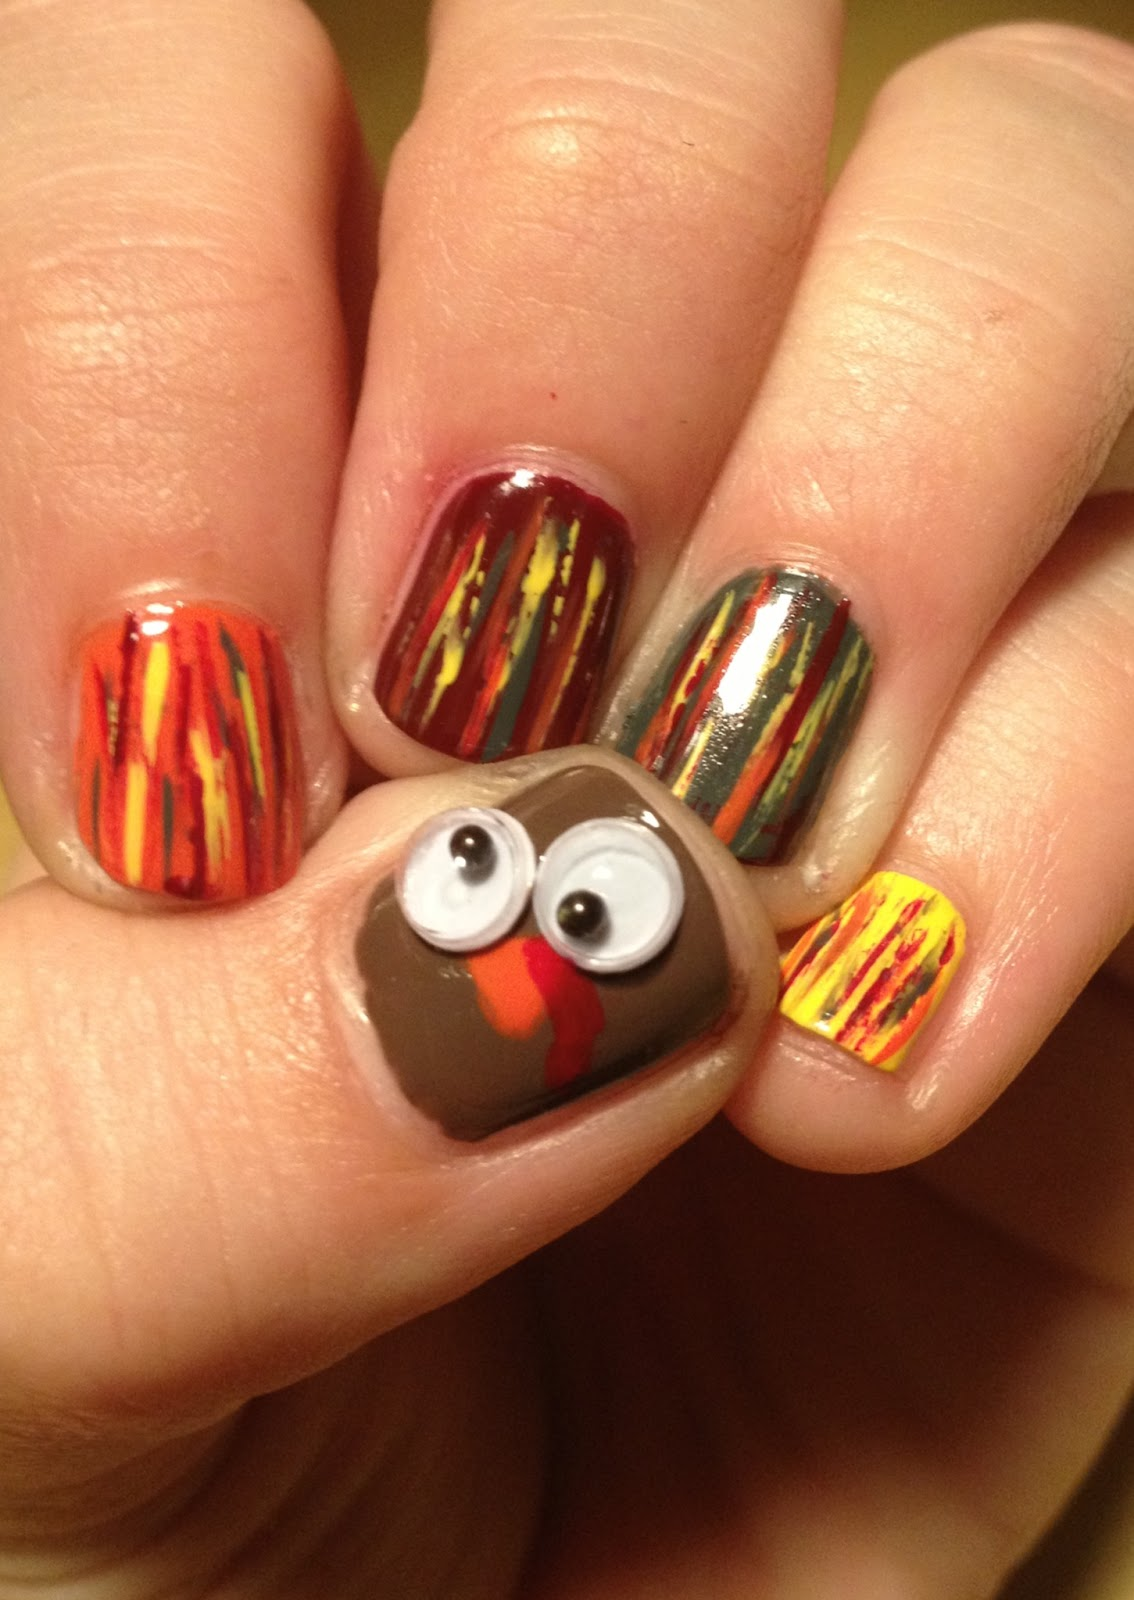 November Nail Art Challenge 2013: Miscellaneous Manicures: November 2012